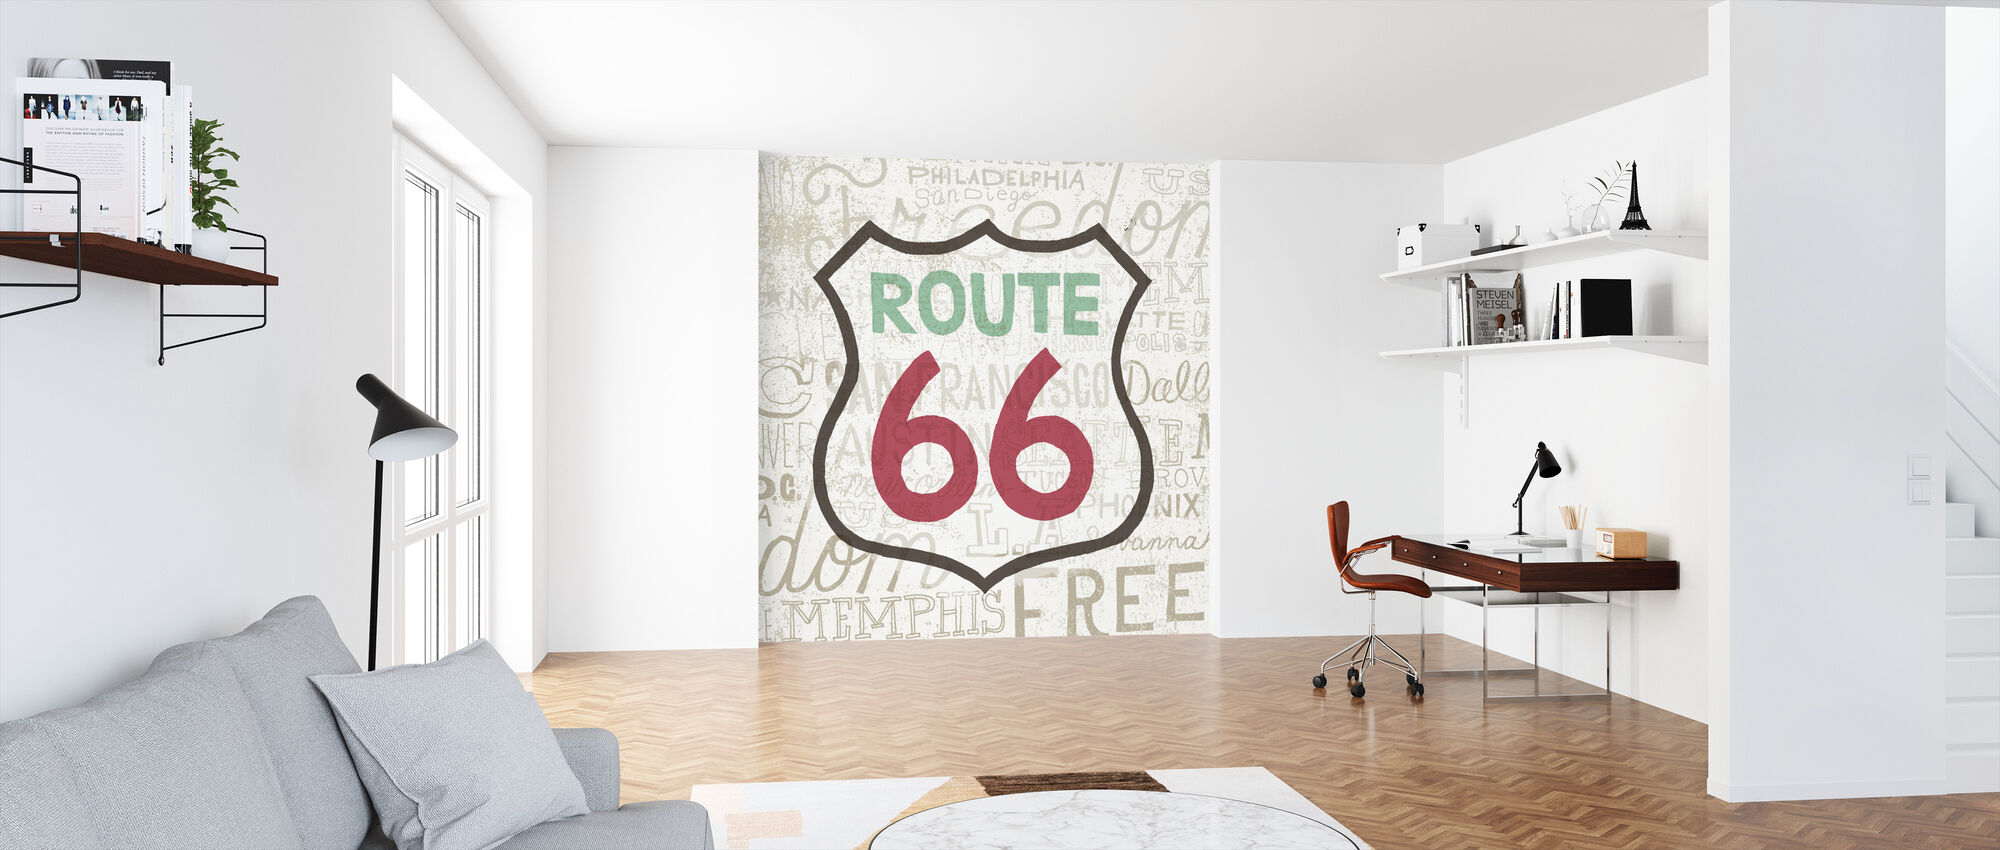 Road Trip - Route 66 - Wallpaper - Office